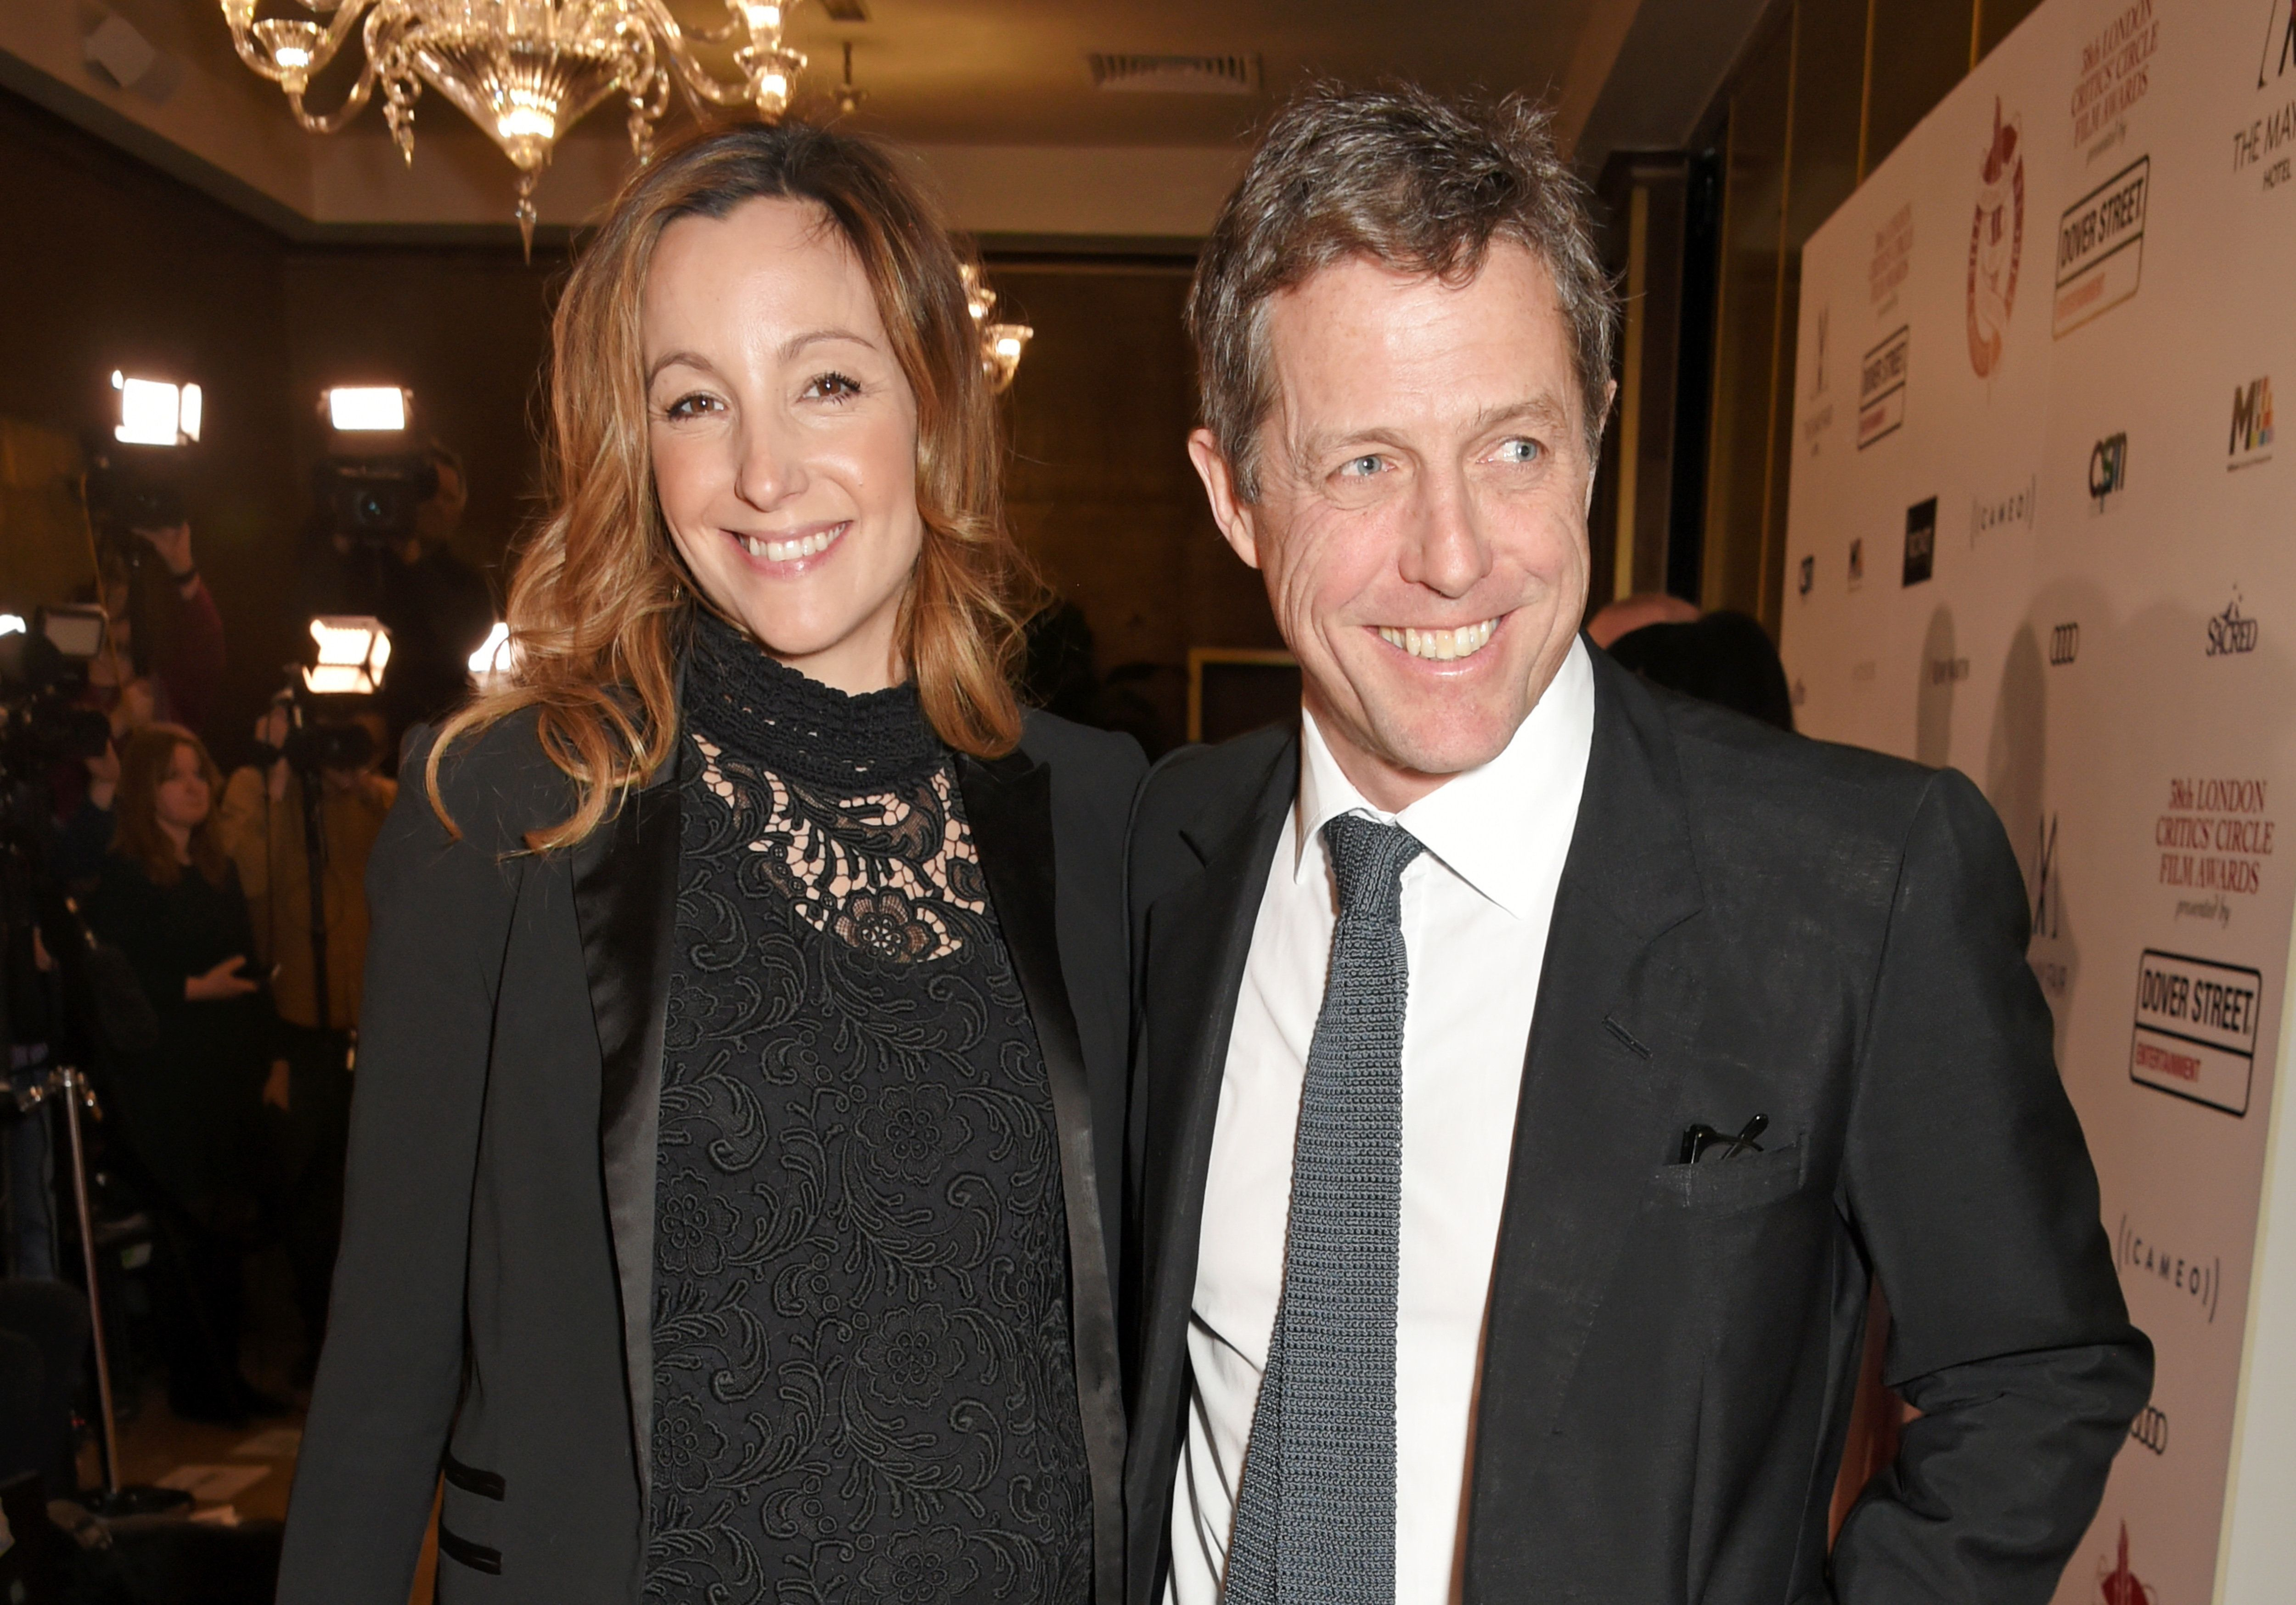 Hollywood star Hugh Grant marries Swedish producer Anna Eberstein, see pics